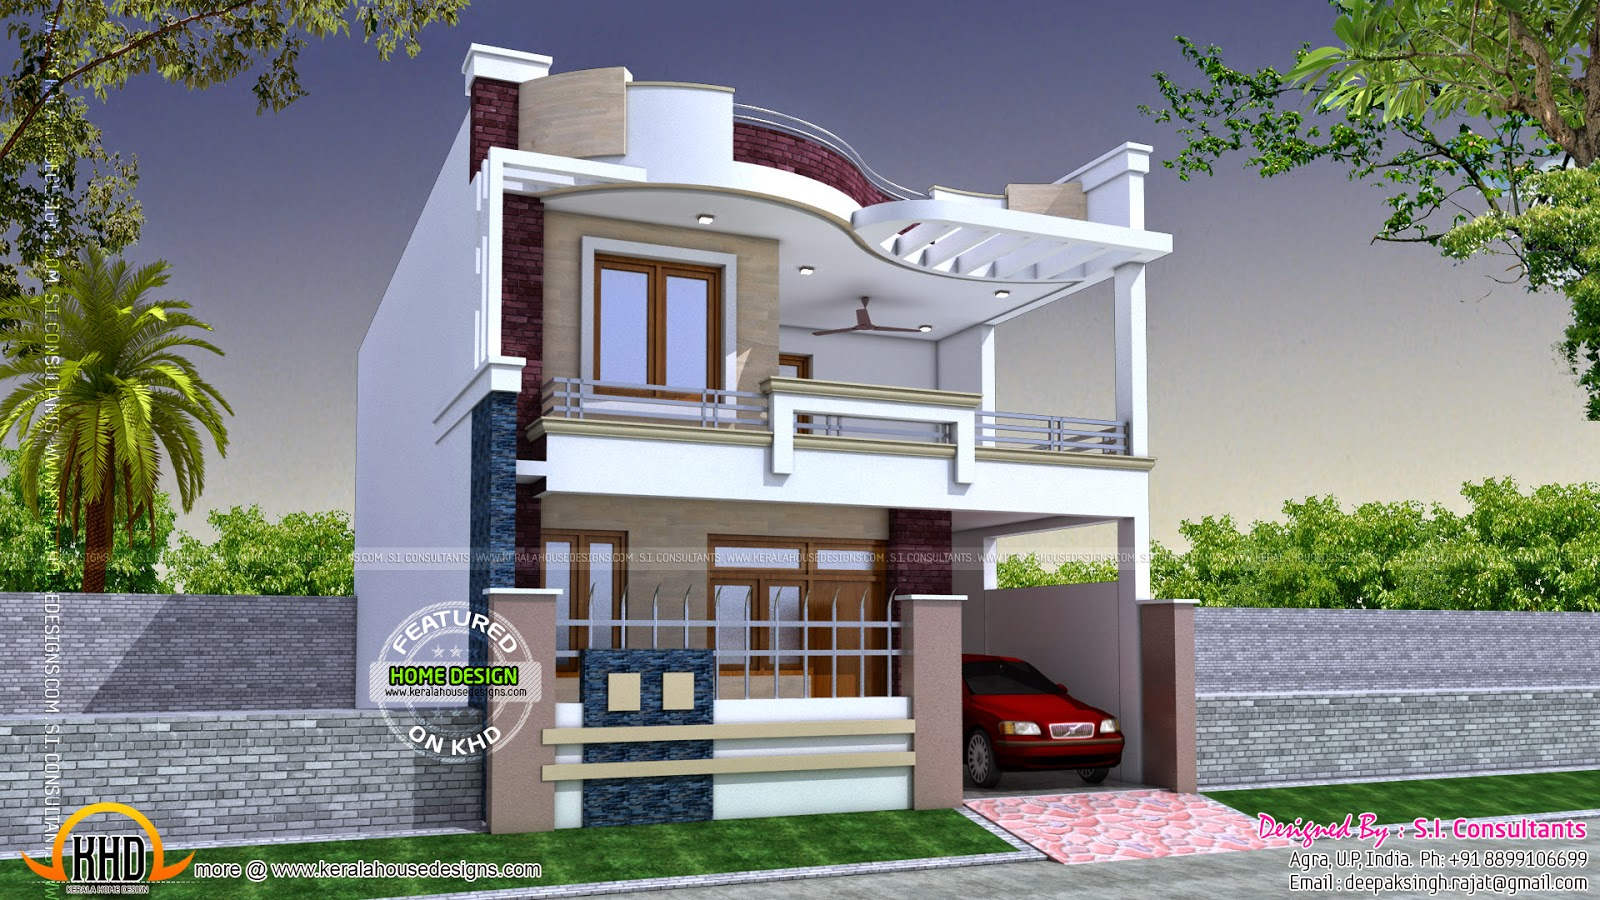 Modern indian home design kerala home design and floor plans for Best house design 2014